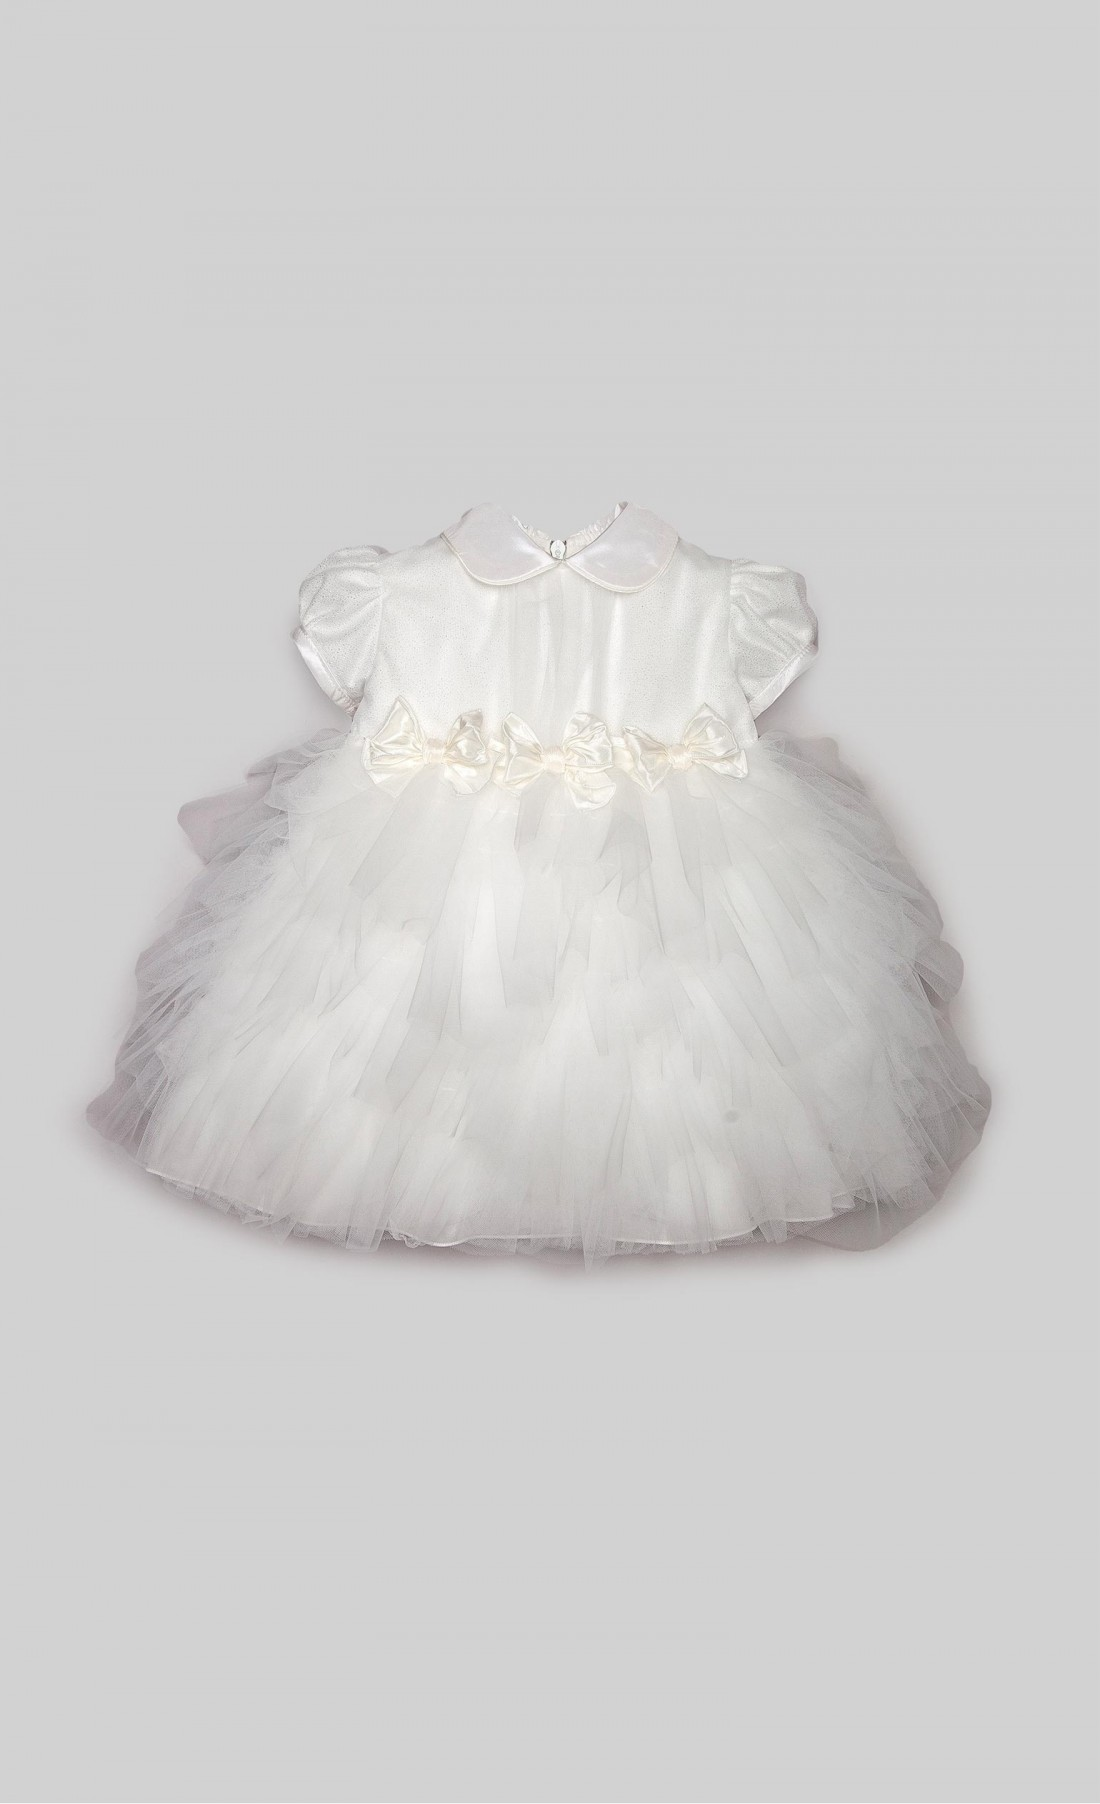 Cream dress in lurex tulle with bows